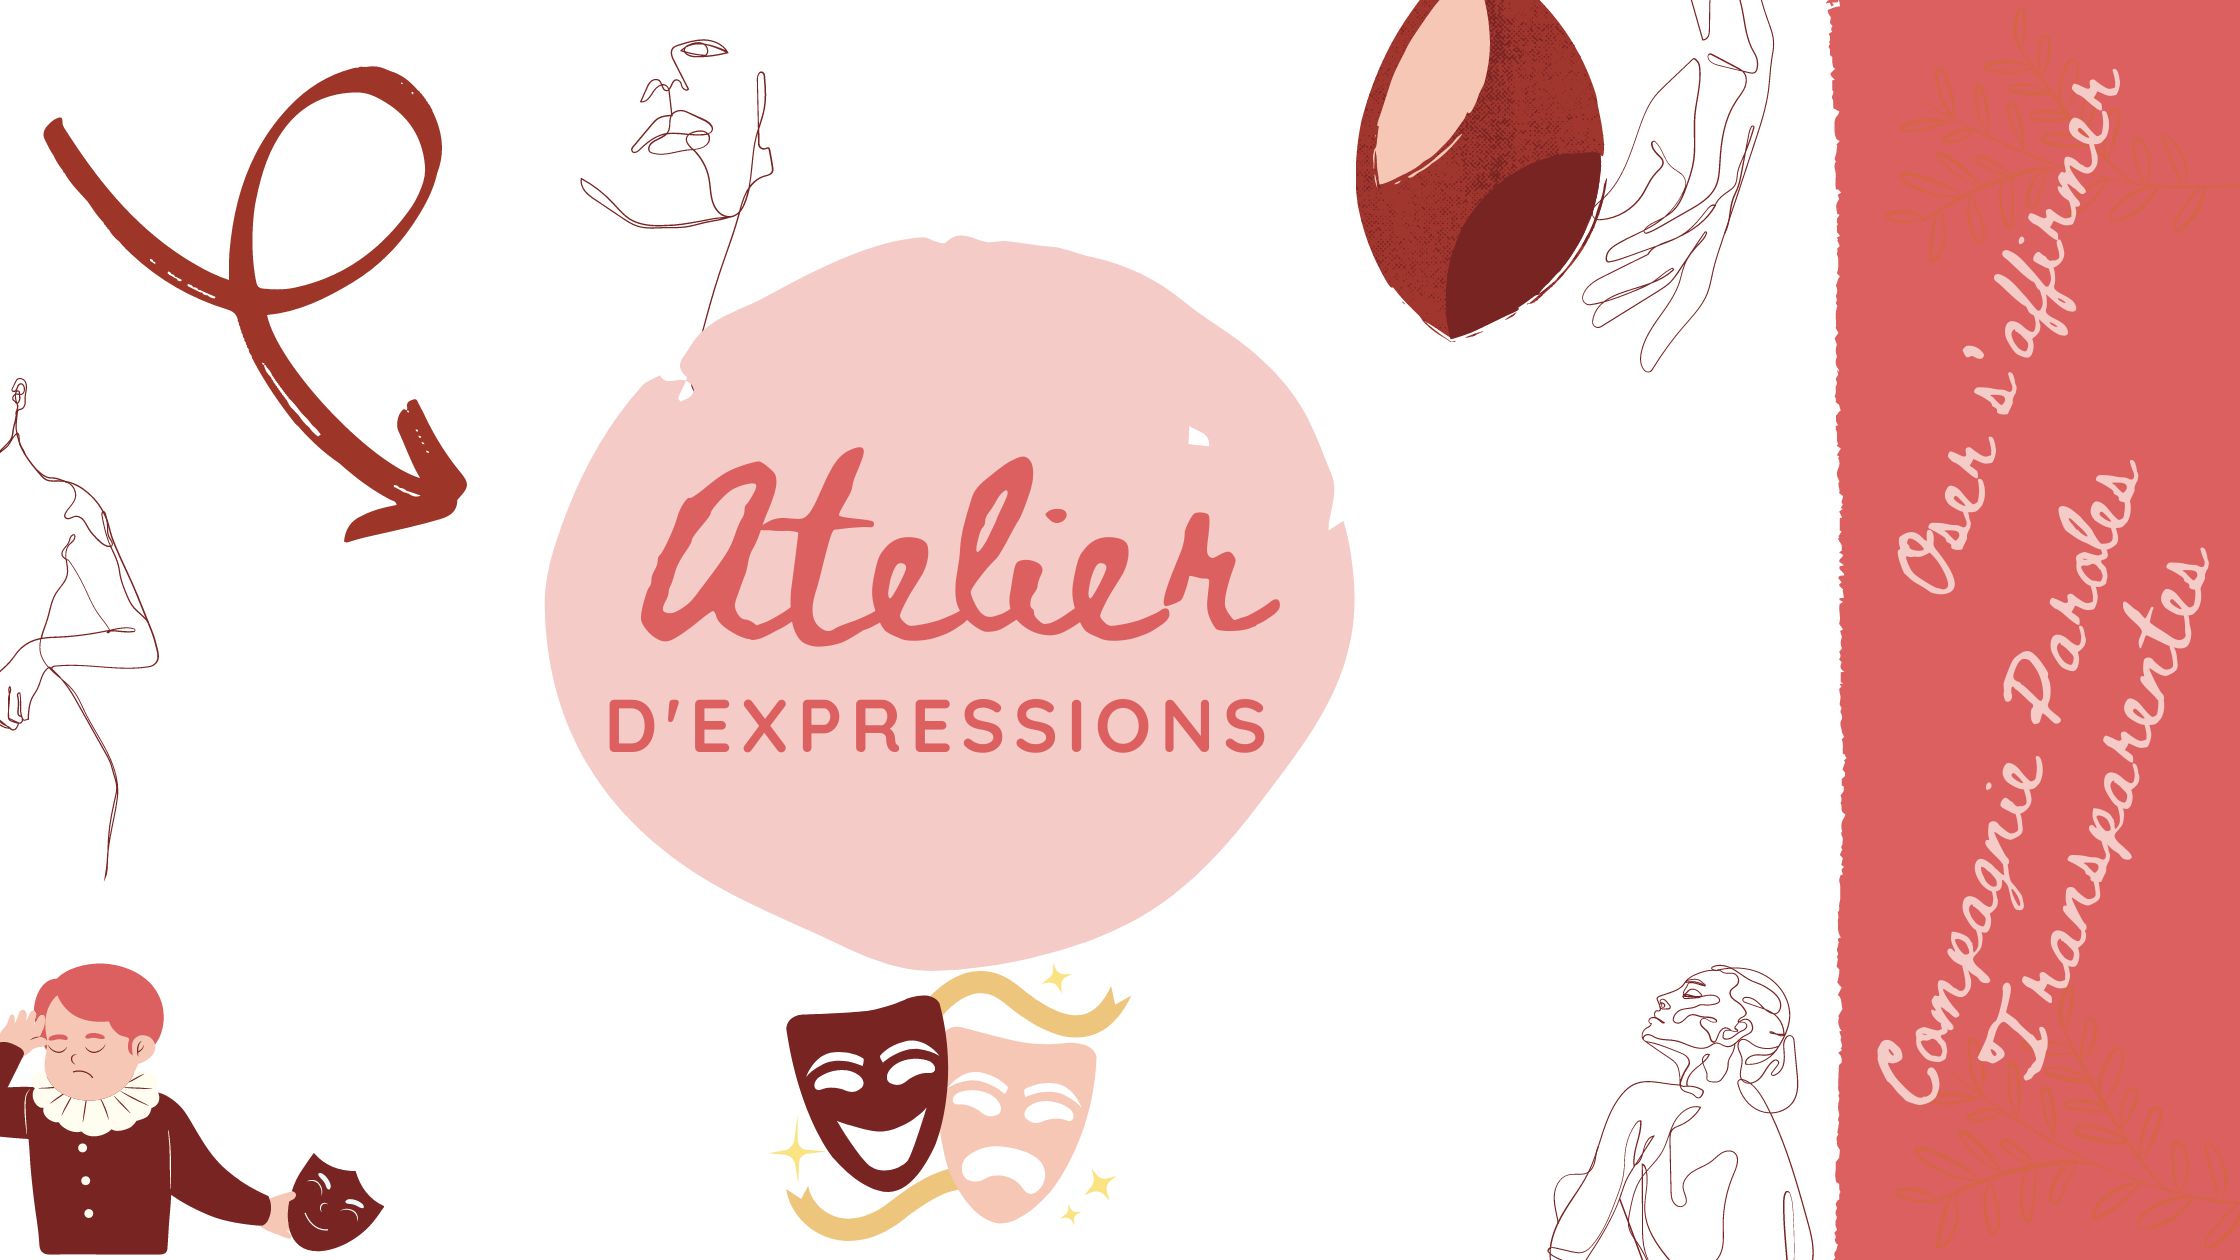 Atelier d'expressions